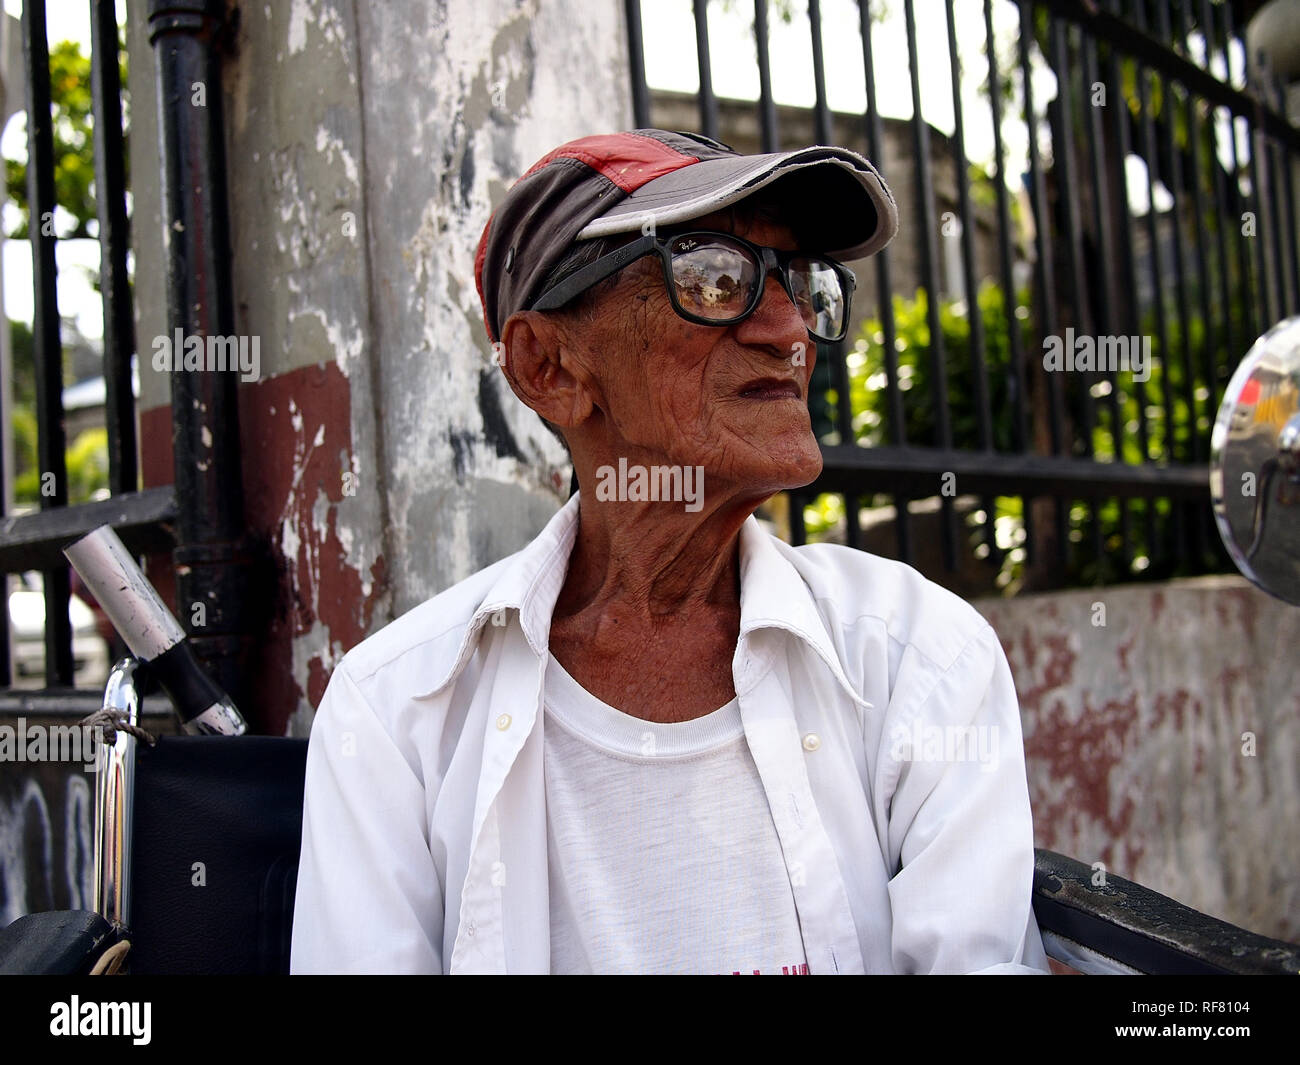 CAINTA, RIZAL, PHILIPPINES - JANUARY 17, 2019: A man with disability sits in his wheelchair and looks at the camera. - Stock Image